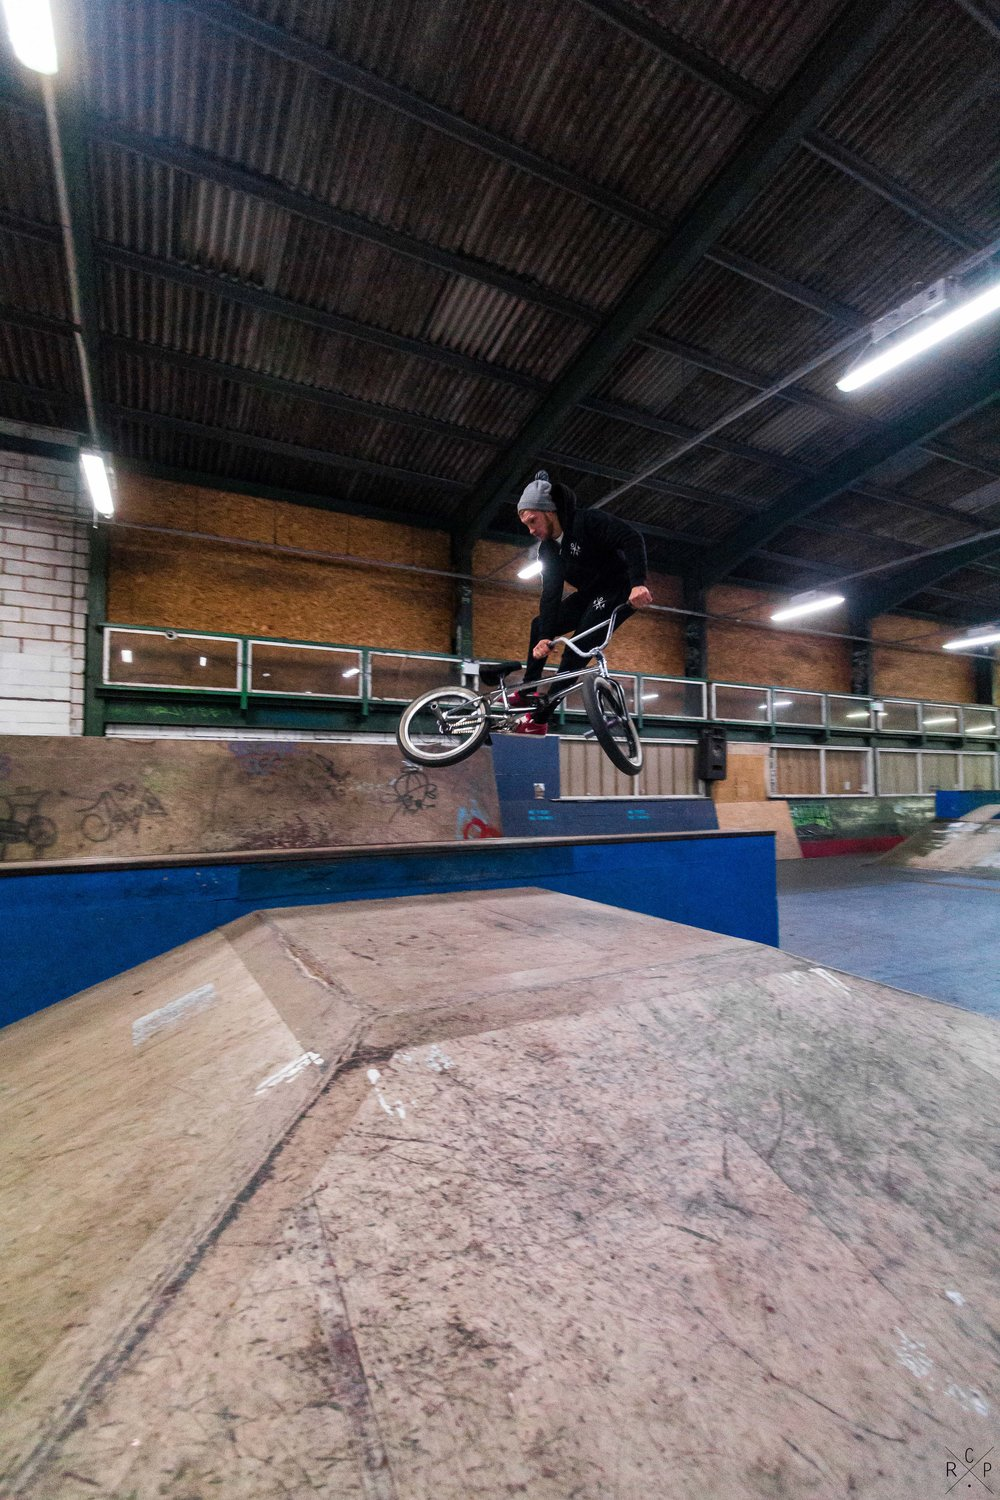 Rob Tailwhip - Ramp City, Blackpool, England 24/11/2016